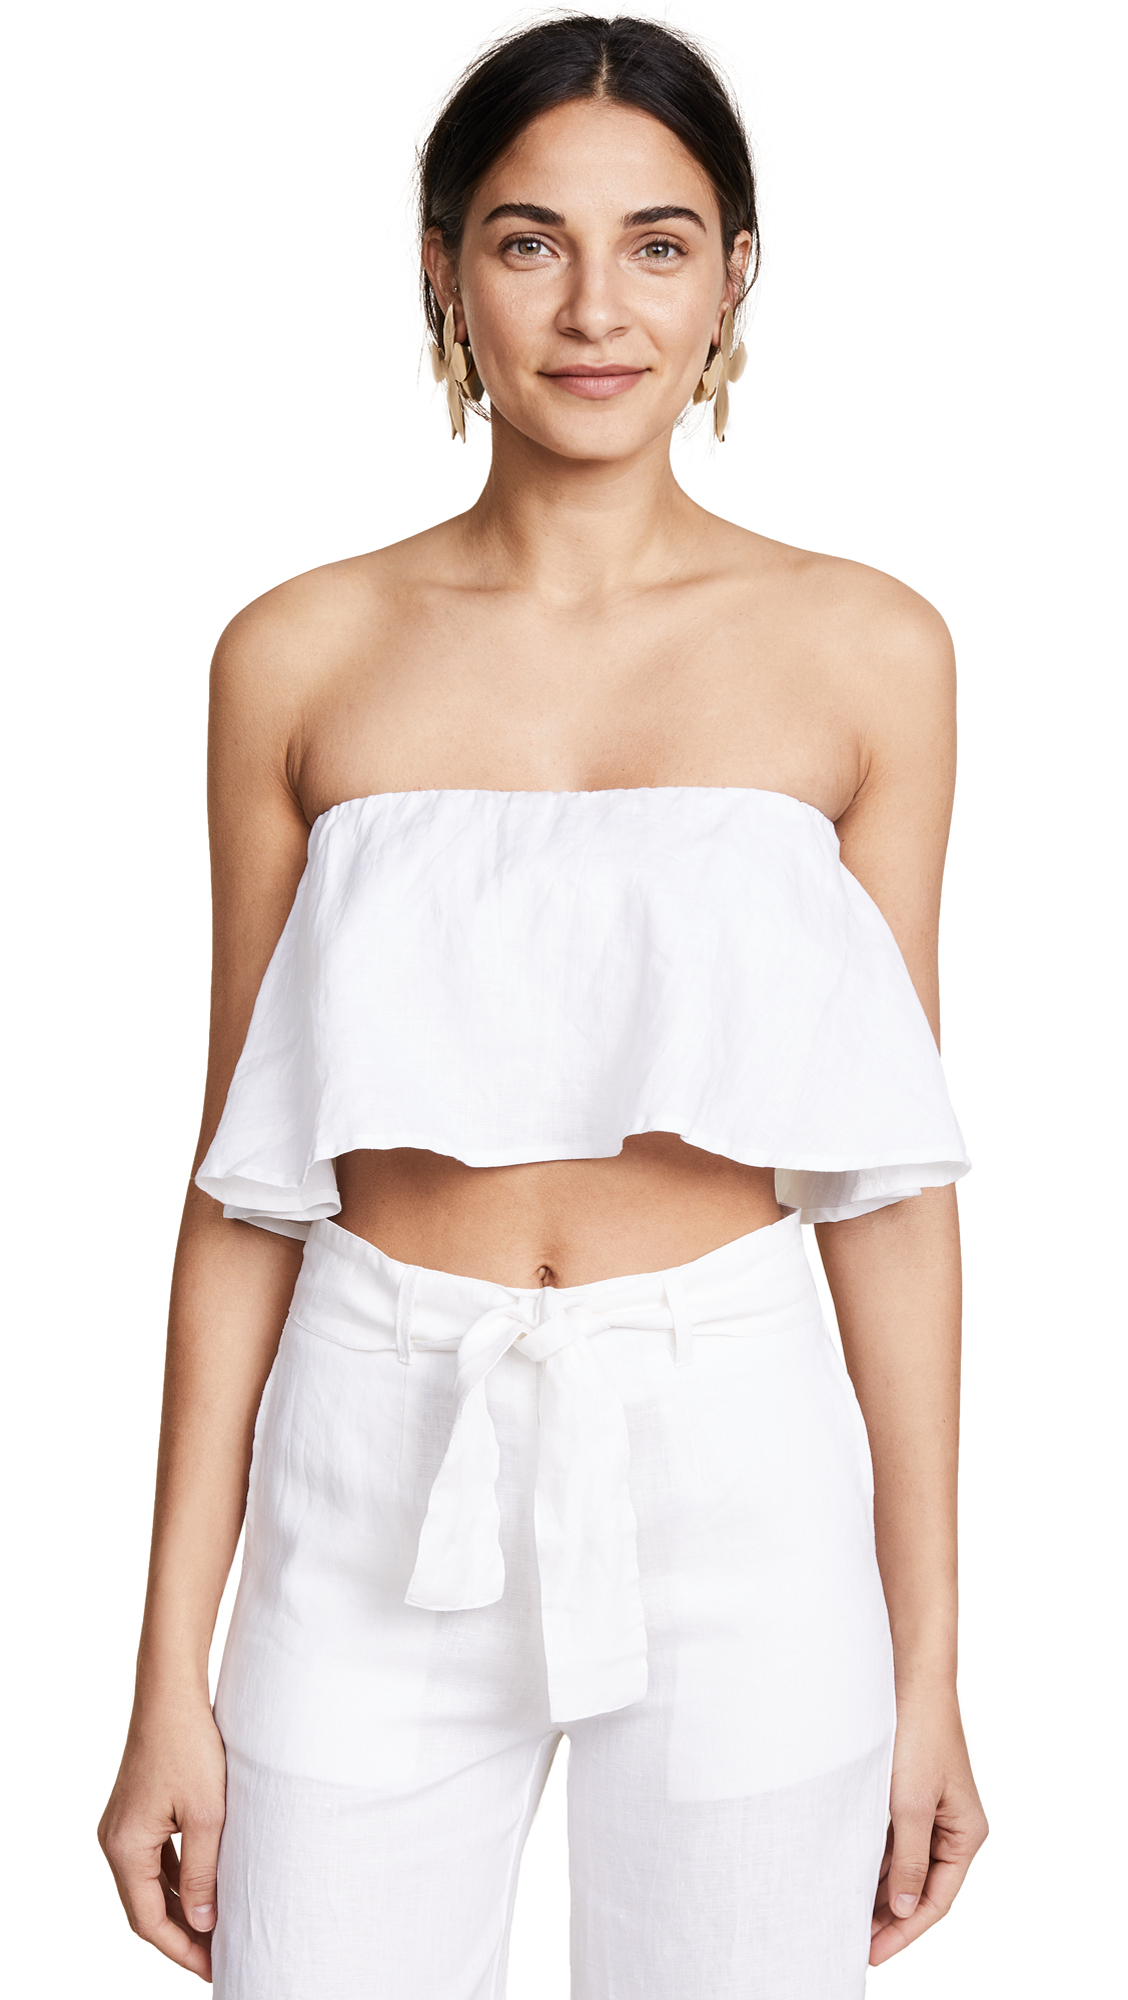 FAITHFULL THE BRAND Solana Top - White